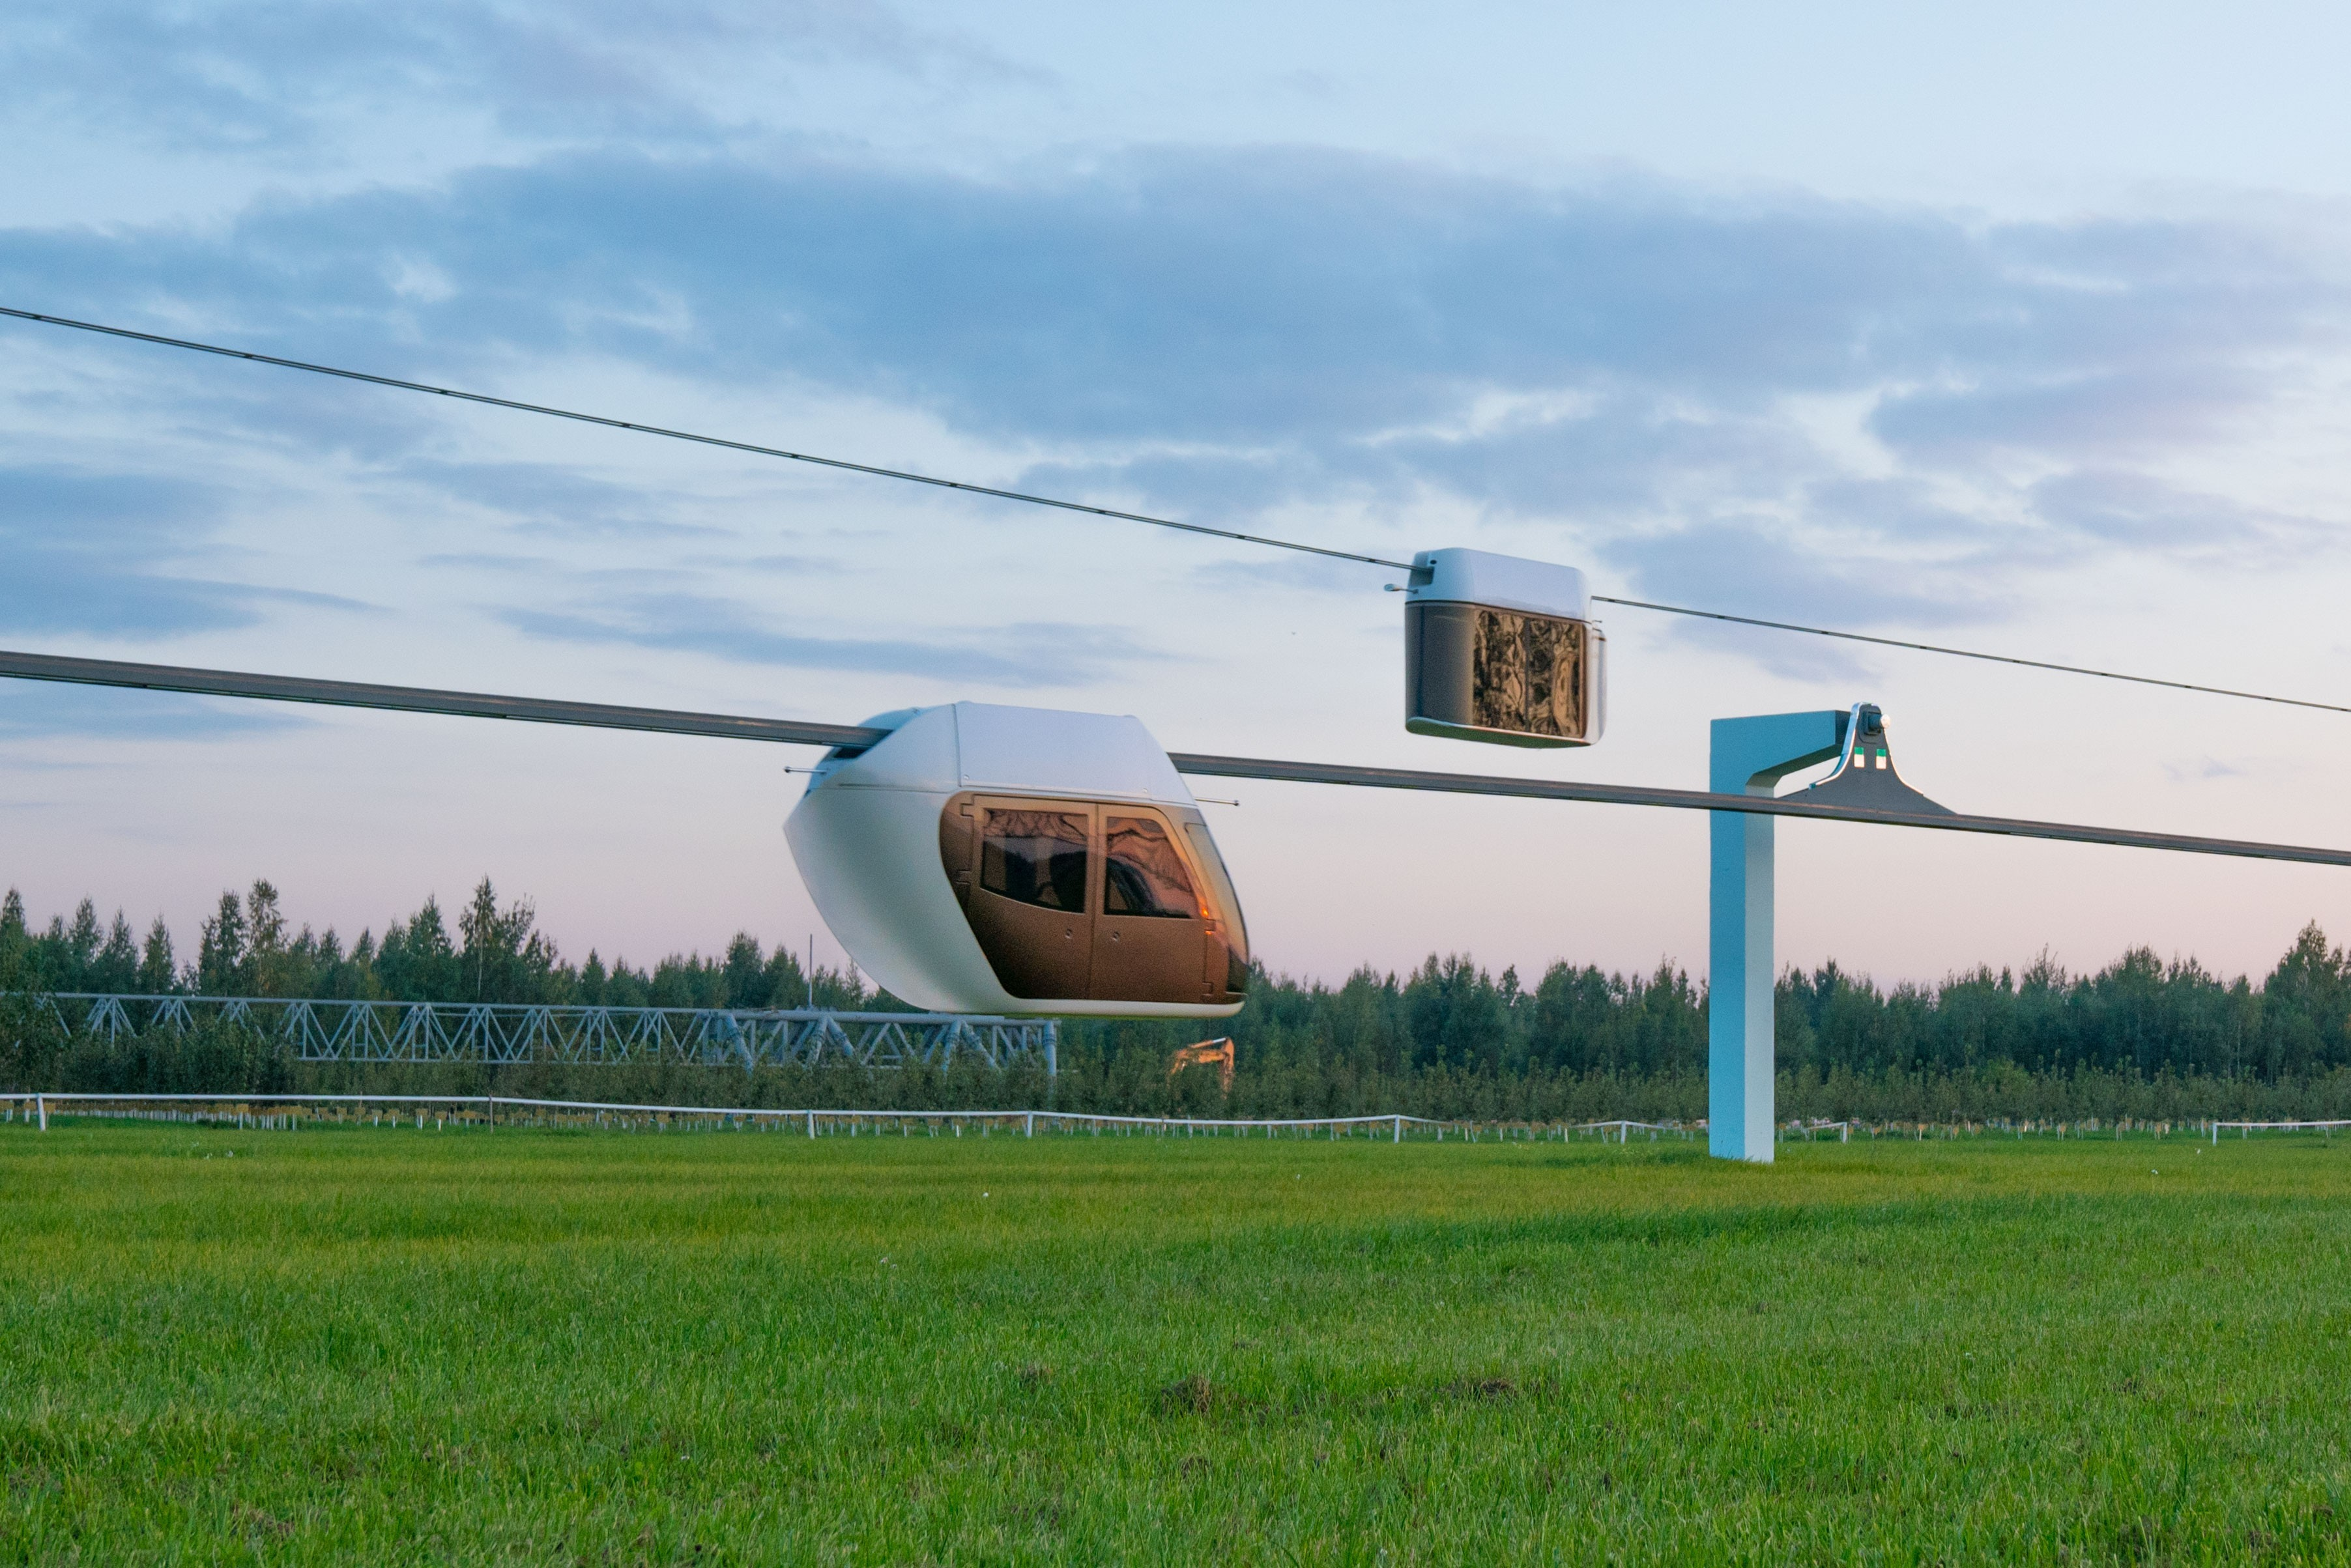 SkyWay is certified. What are the news from SkyTran and Hyperloop?